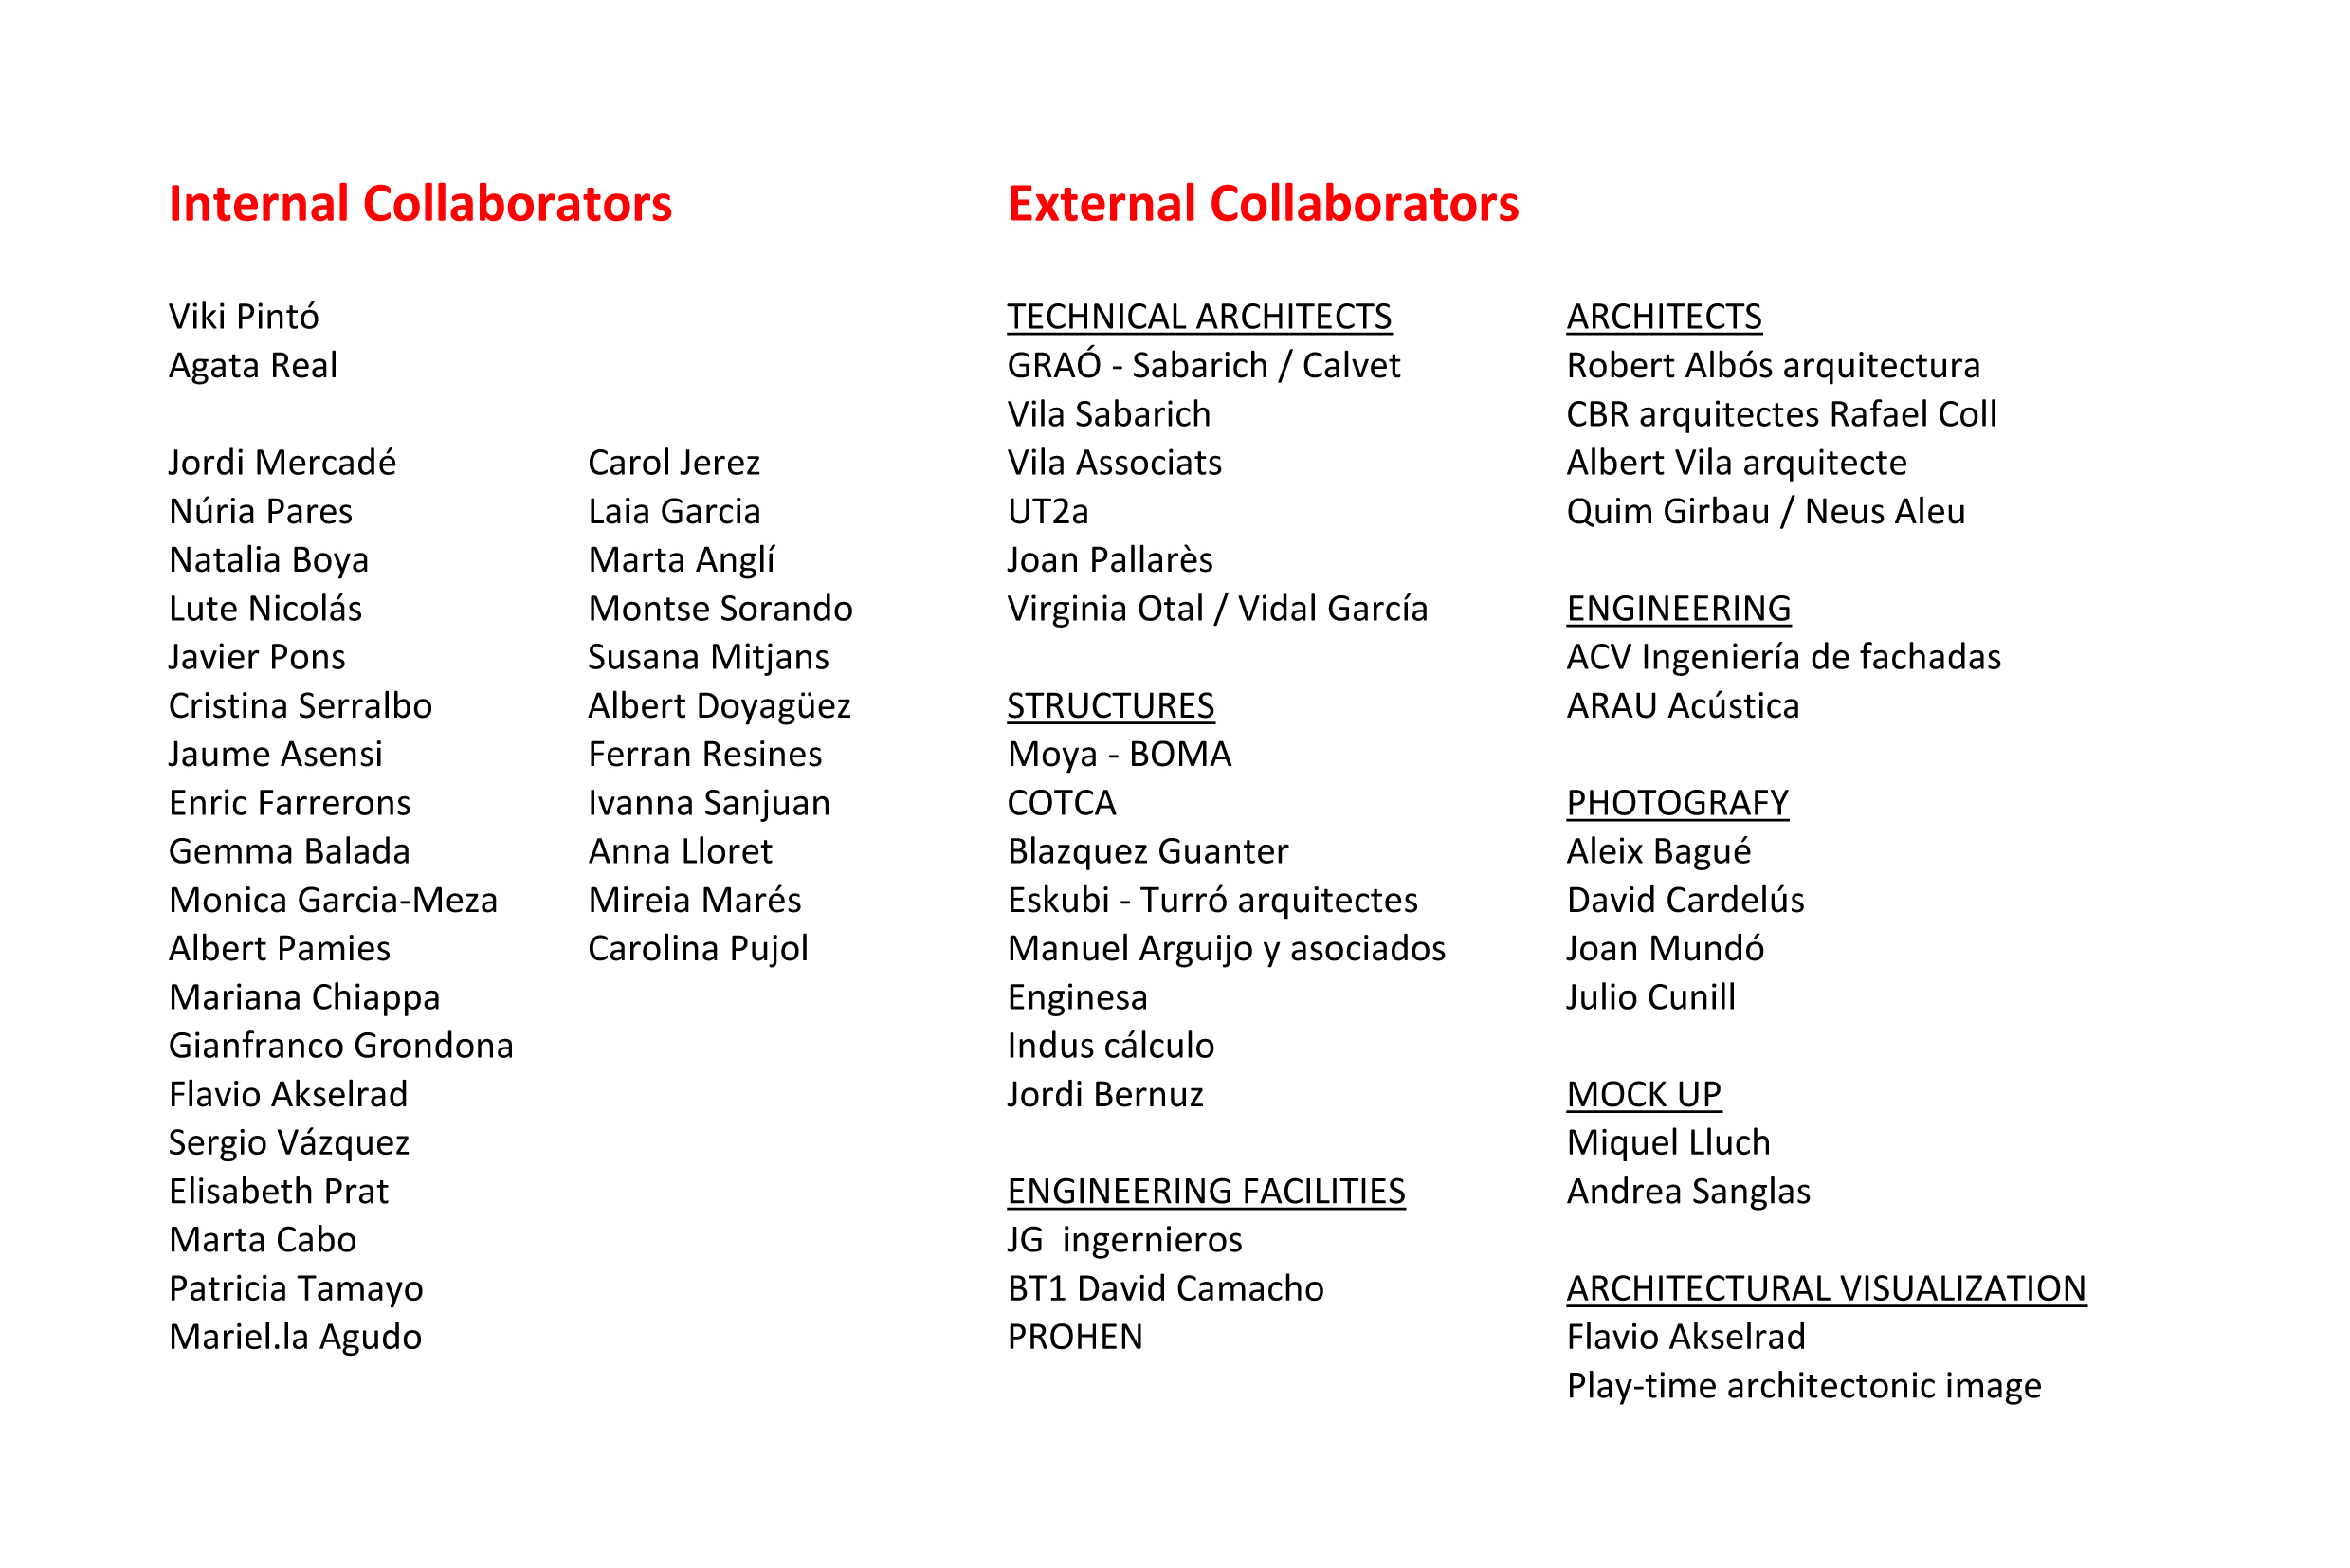 TEAM OF COLLABORATORSx